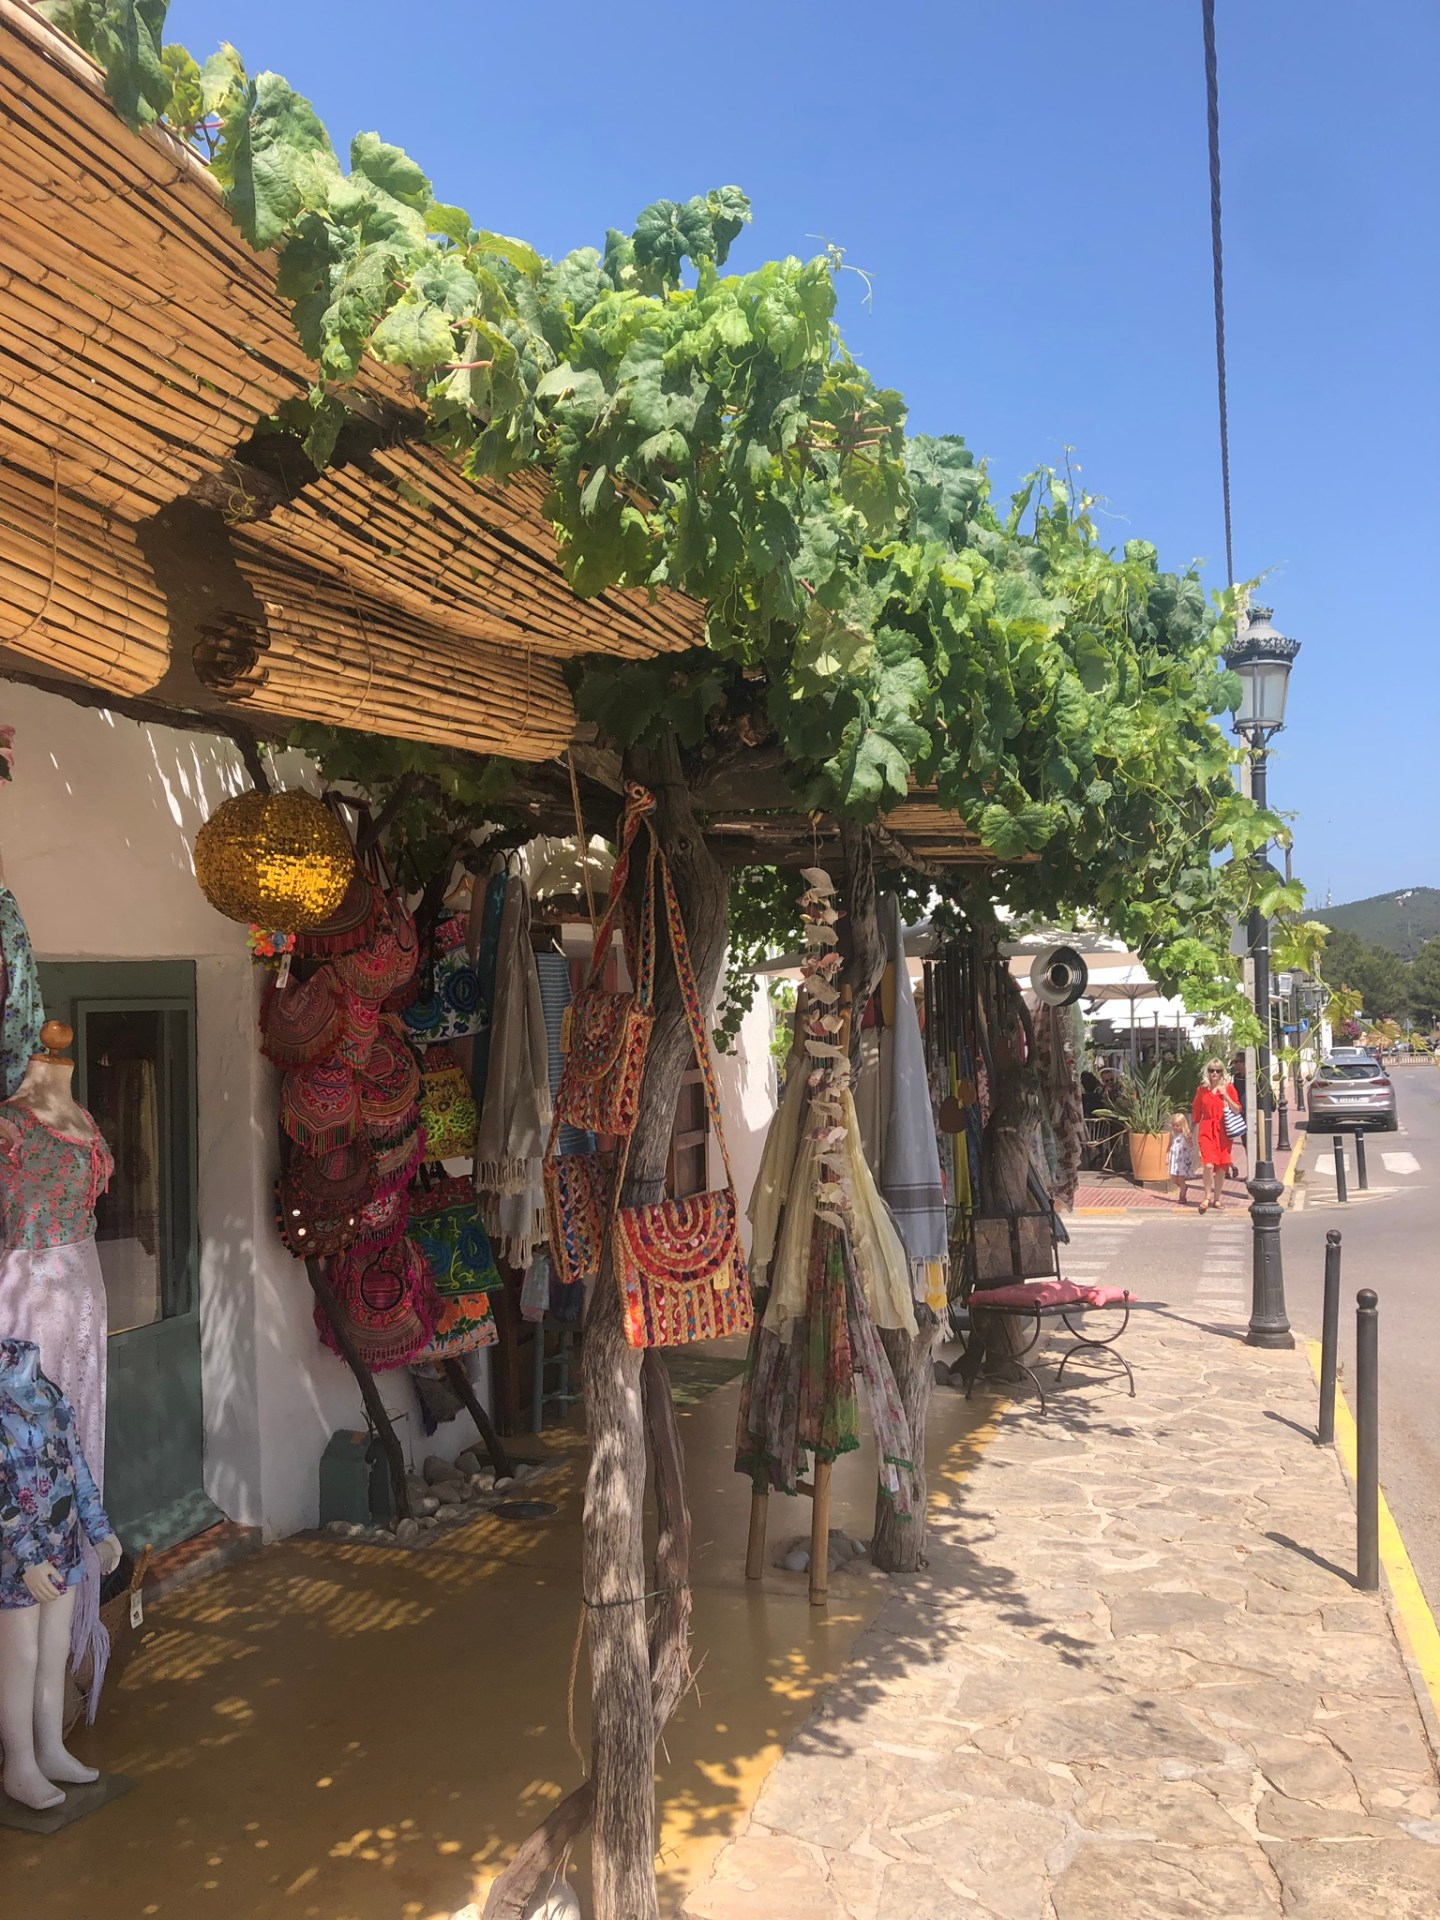 Best places to visit in Ibiza: Market in Santa Gertrudis, Ibiza